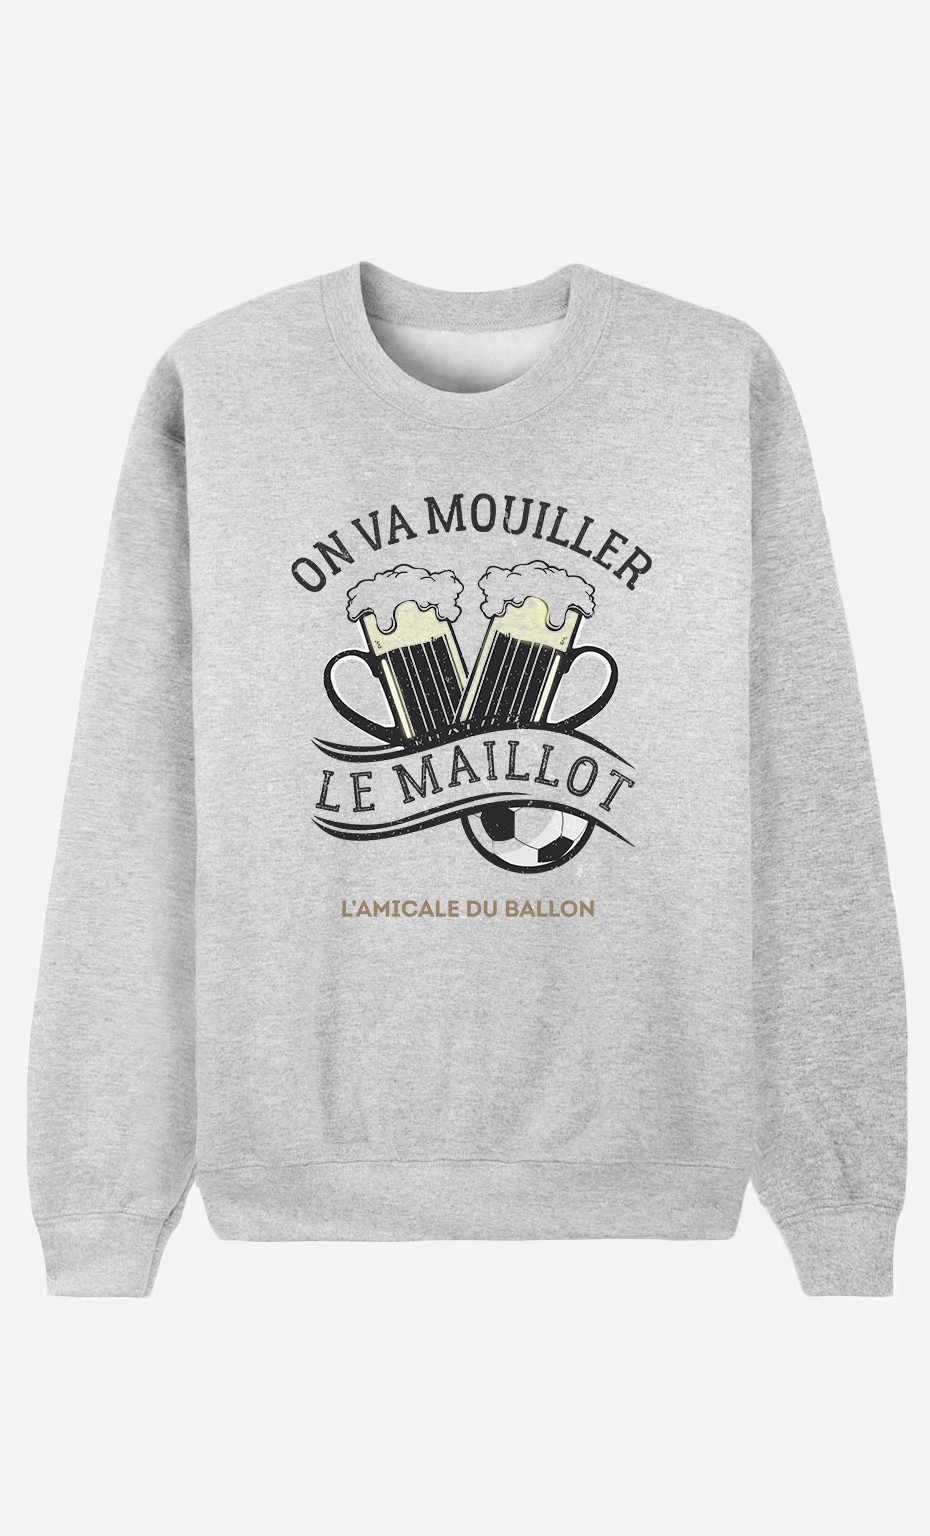 Sweat Femme On Va Mouiller le Maillot